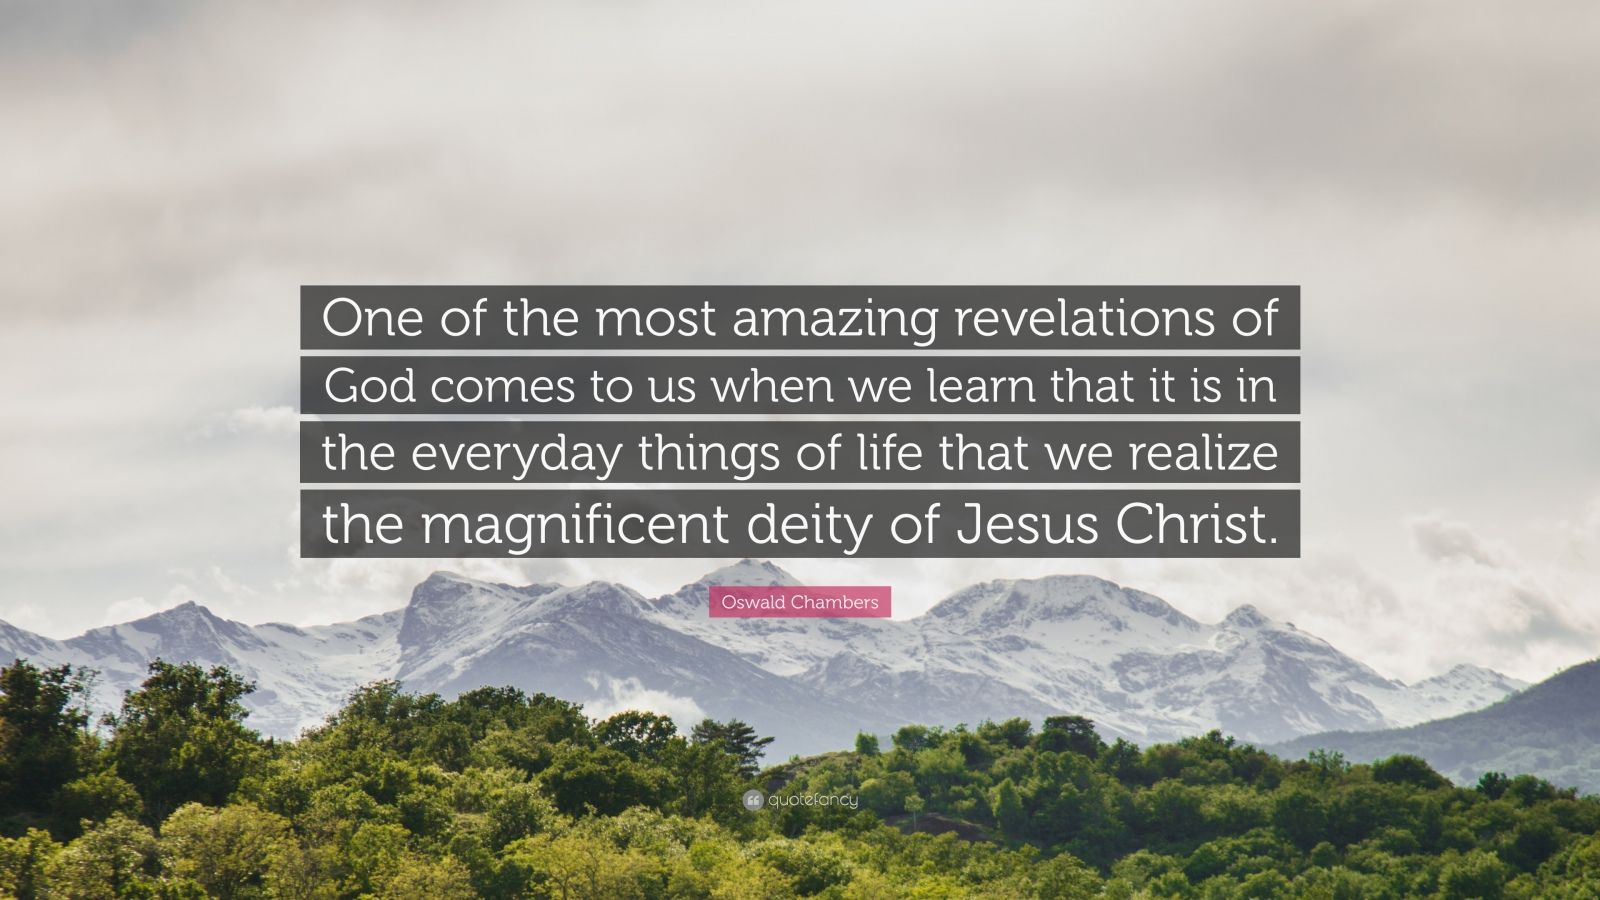 """Oswald Chambers Quote: """"One of the most amazing revelations of God comes to us when we learn that it is in the everyday things of life that we realize the magnificent deity of Jesus Christ."""""""